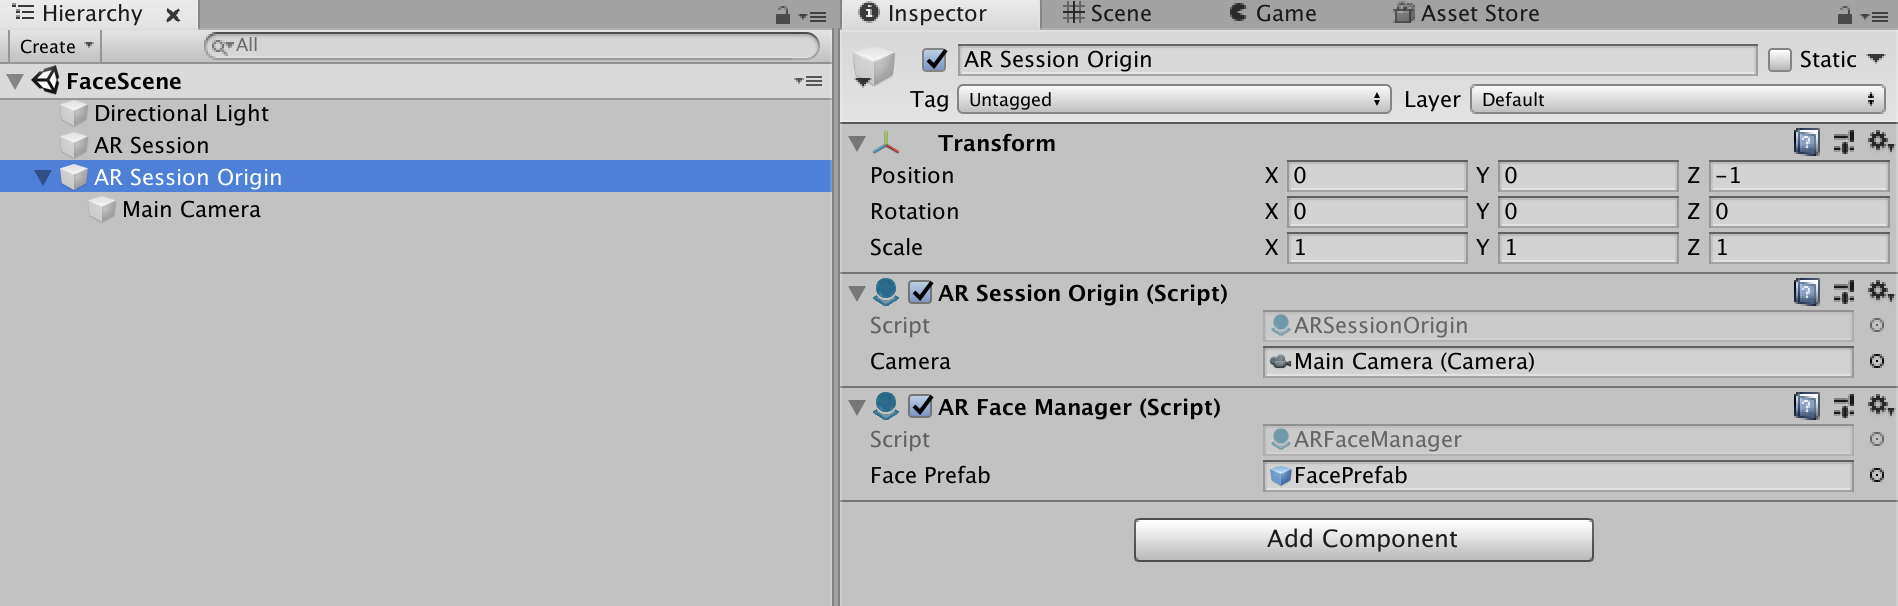 ARFoundation Face Tracking step-by-step - Unity Forum